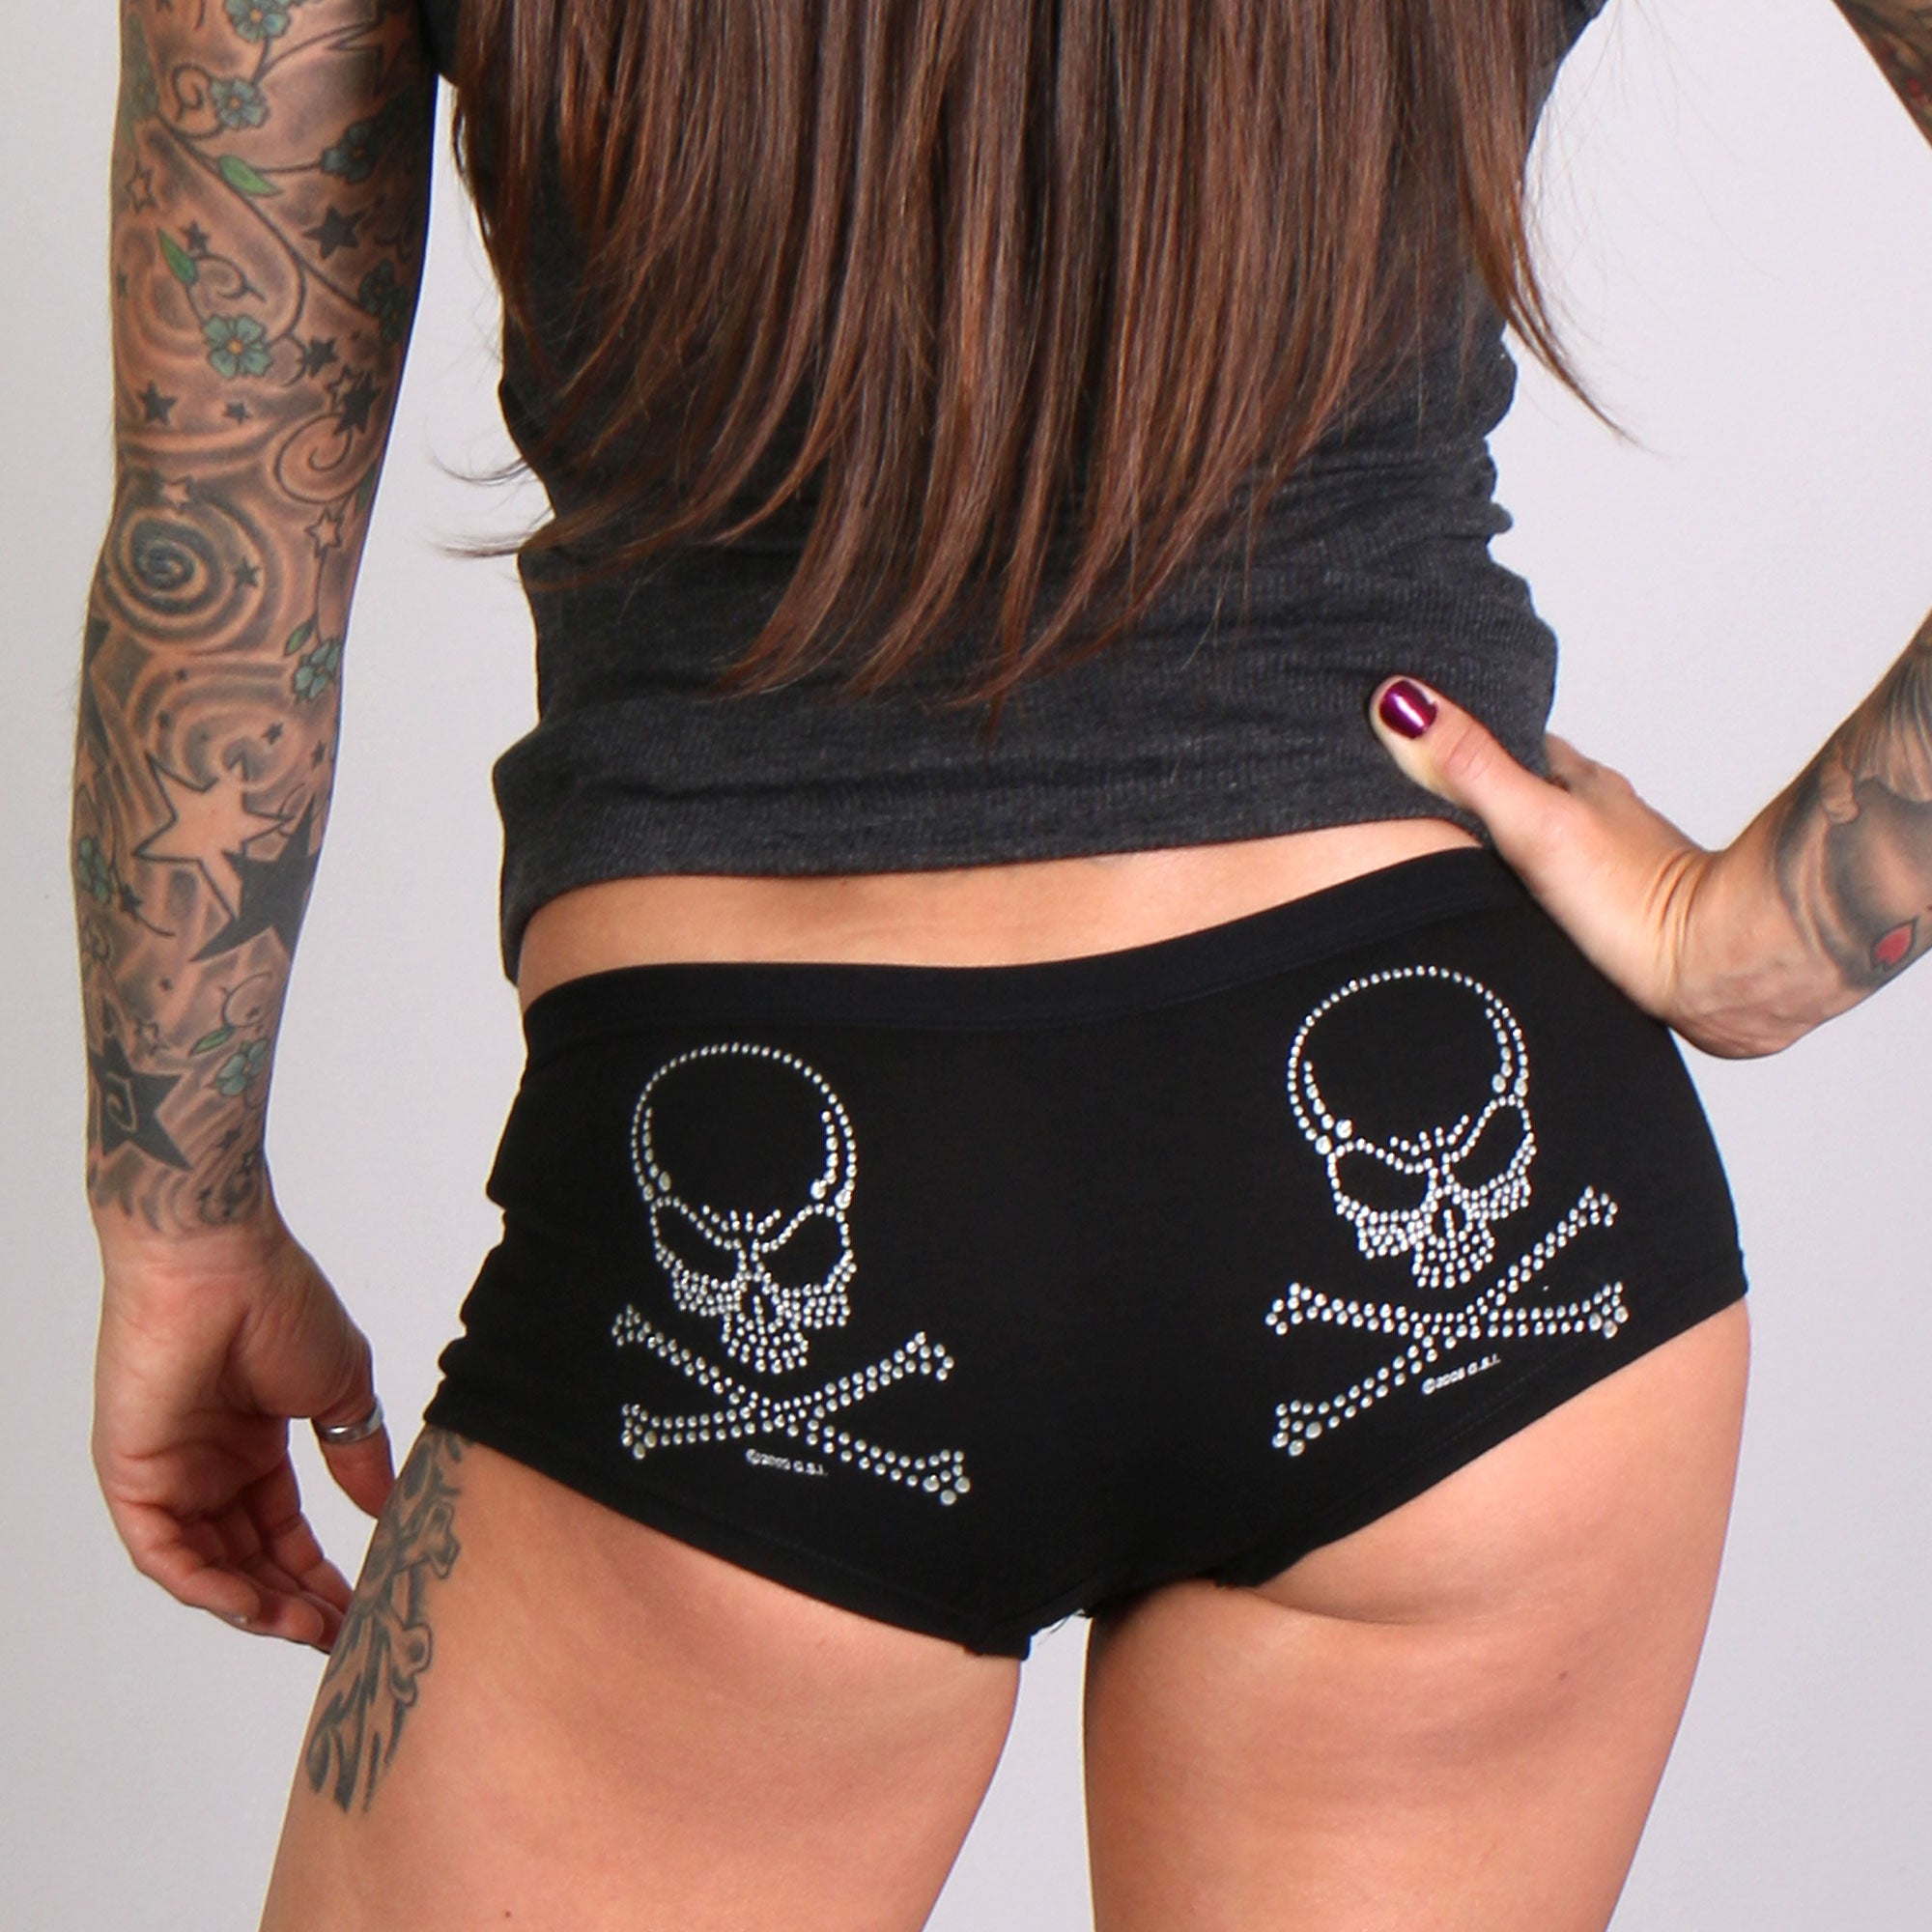 Hot Leathers Silver Glitter Ink Skull and Crossbones Ladies Boy Shorts